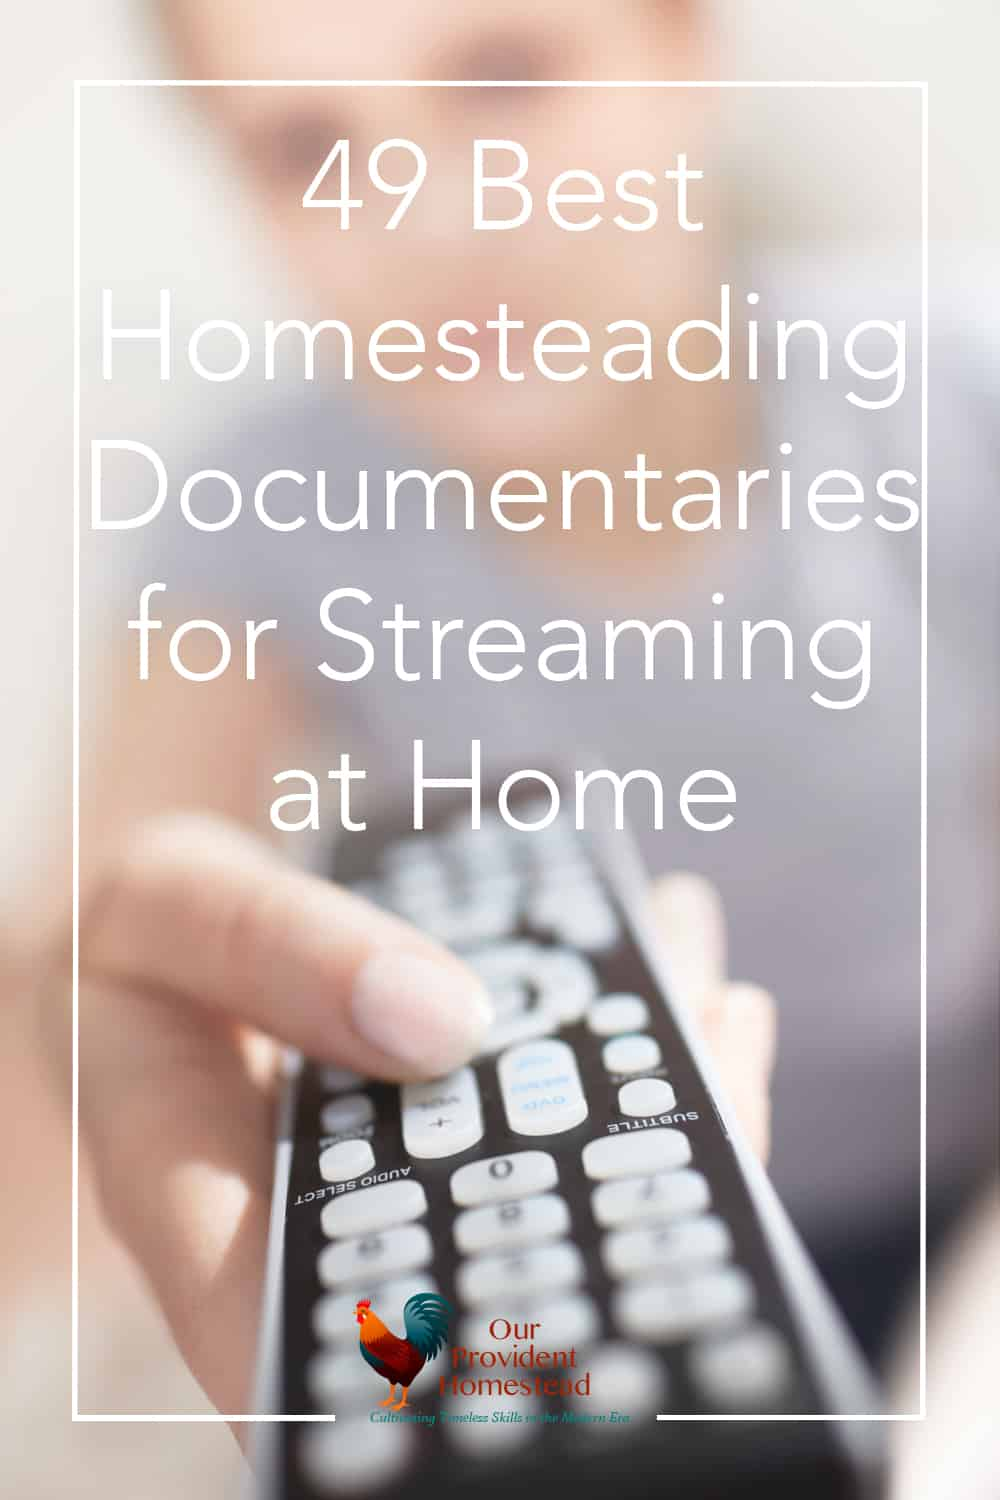 Do you have downtime in the winter? Click here to see the 49 best homesteading documentaries for streaming at home to keep you learning all winter long. #homesteading #homesteadingdocumentaries #streamingmovies